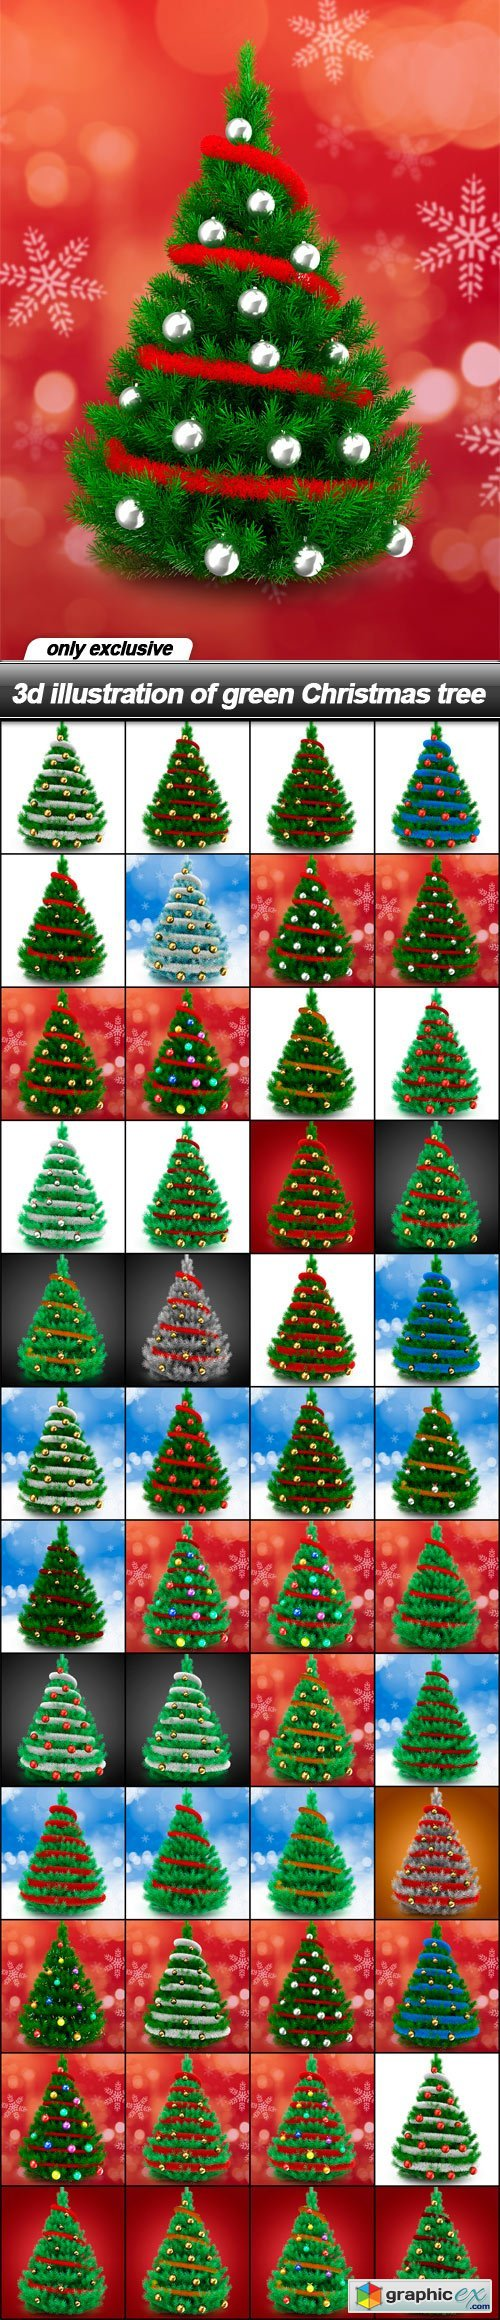 3d illustration of green Christmas tree - 48 UHQ JPEG